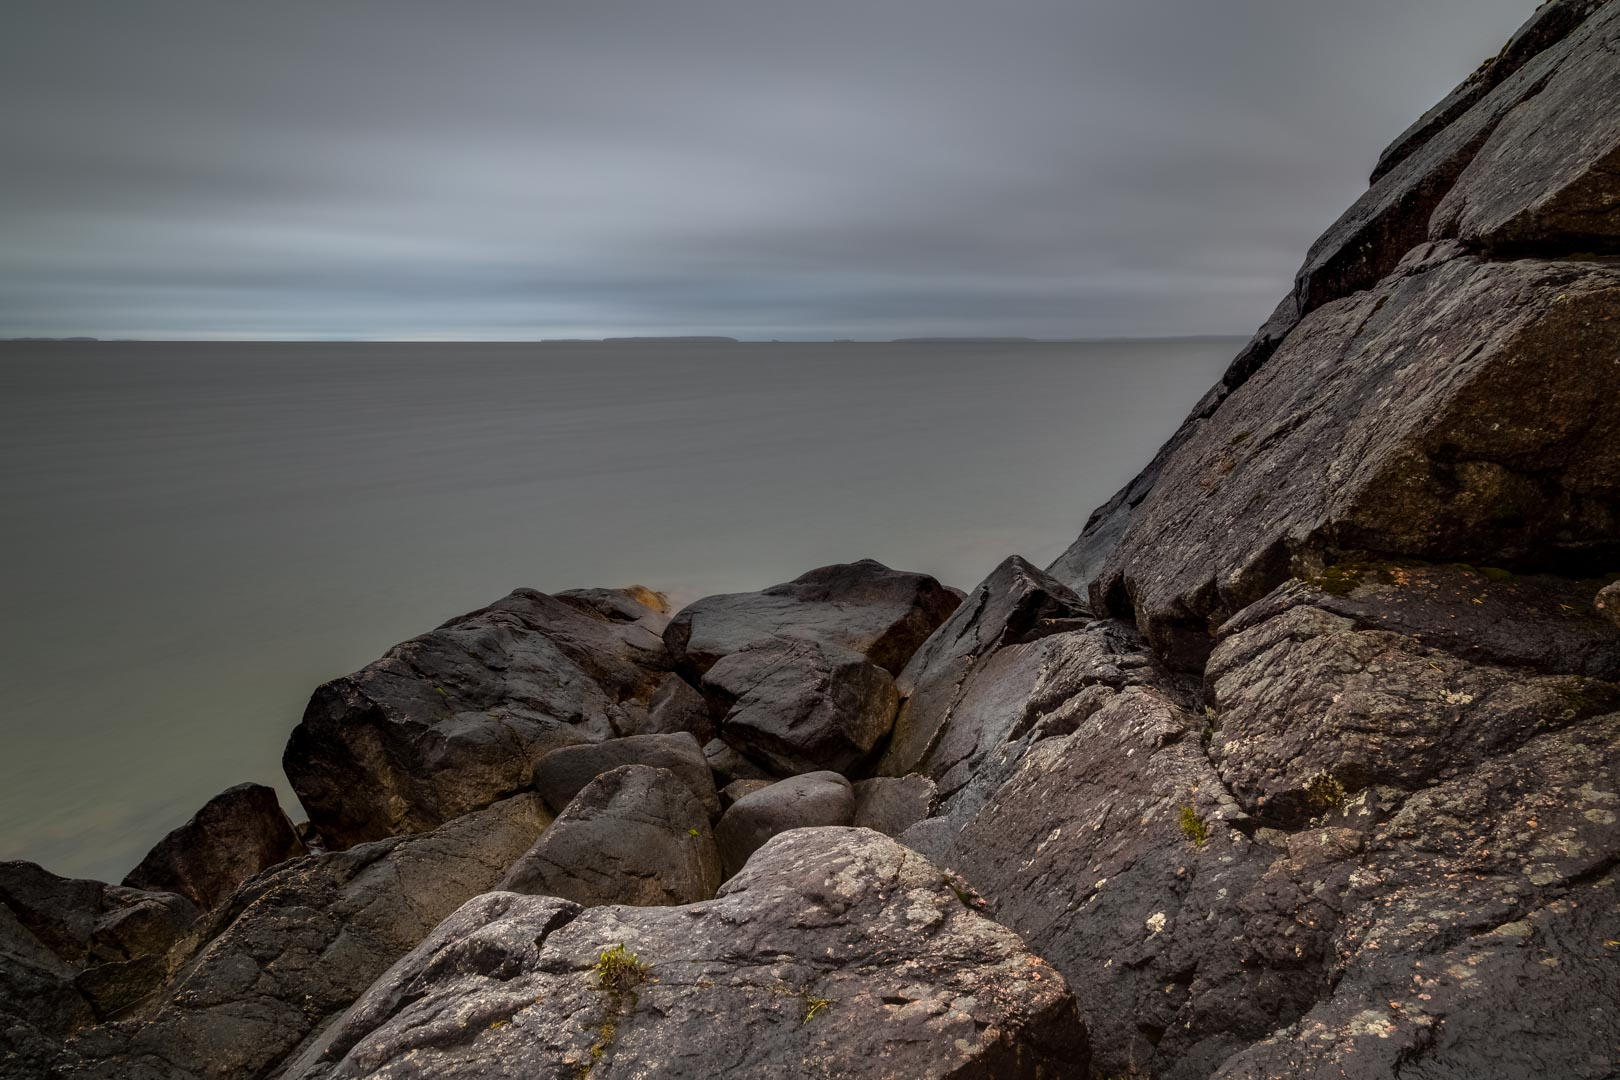 Canon 6D, Canon EF 24-105 f4 -> HDR, f13, ISO 100, 24mm